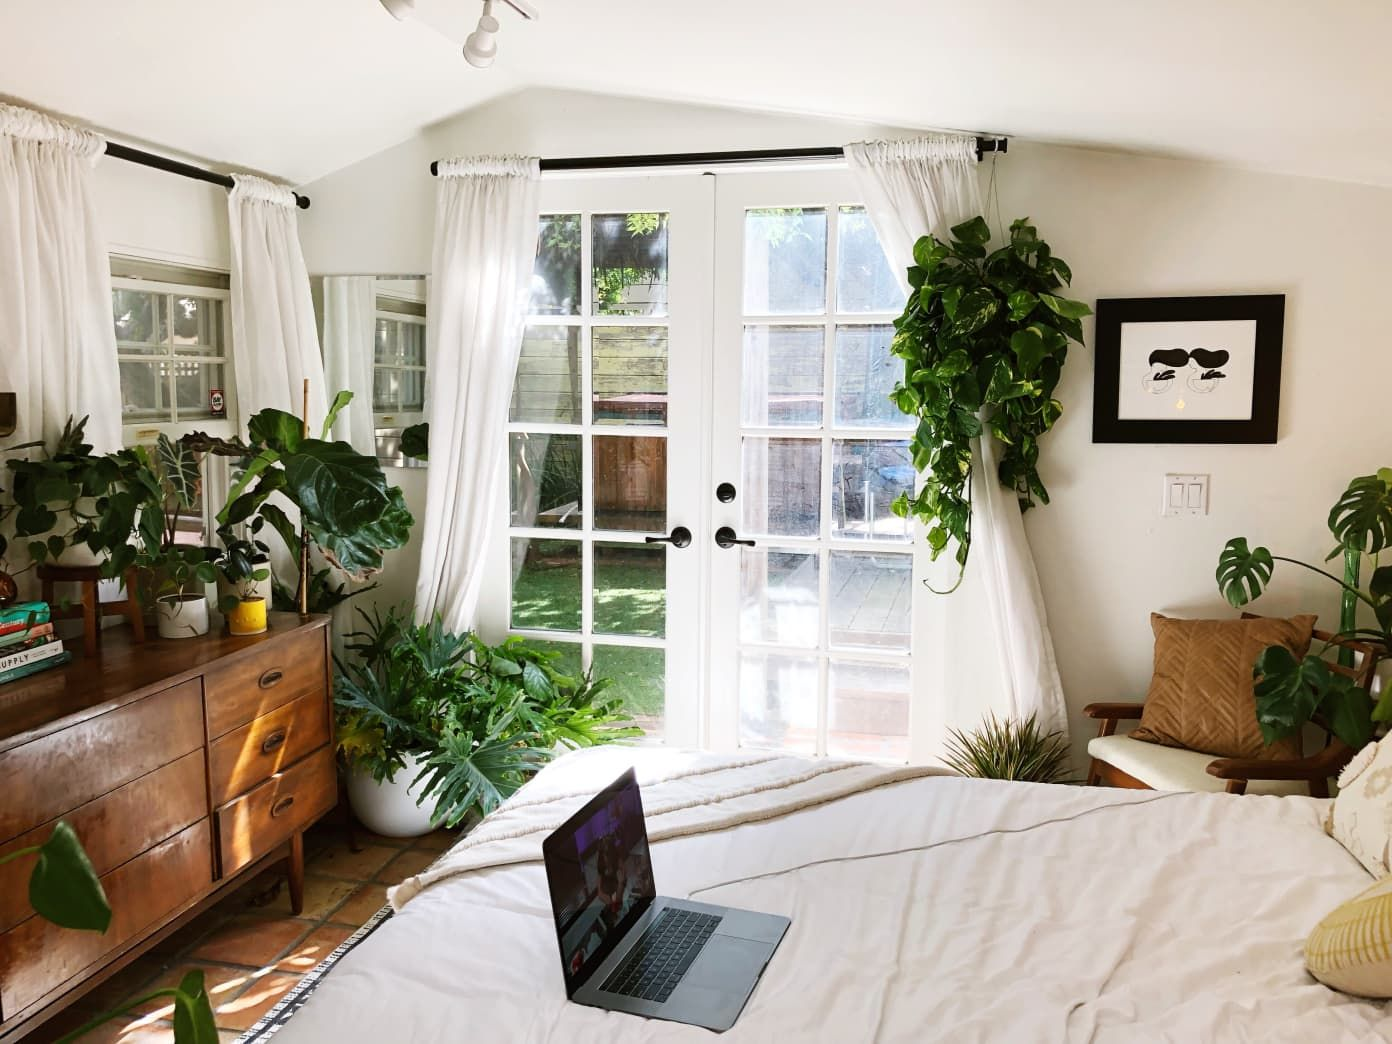 Even Though It's Tiny, This 250-Square-Foot Studio Cottage Is Stylish